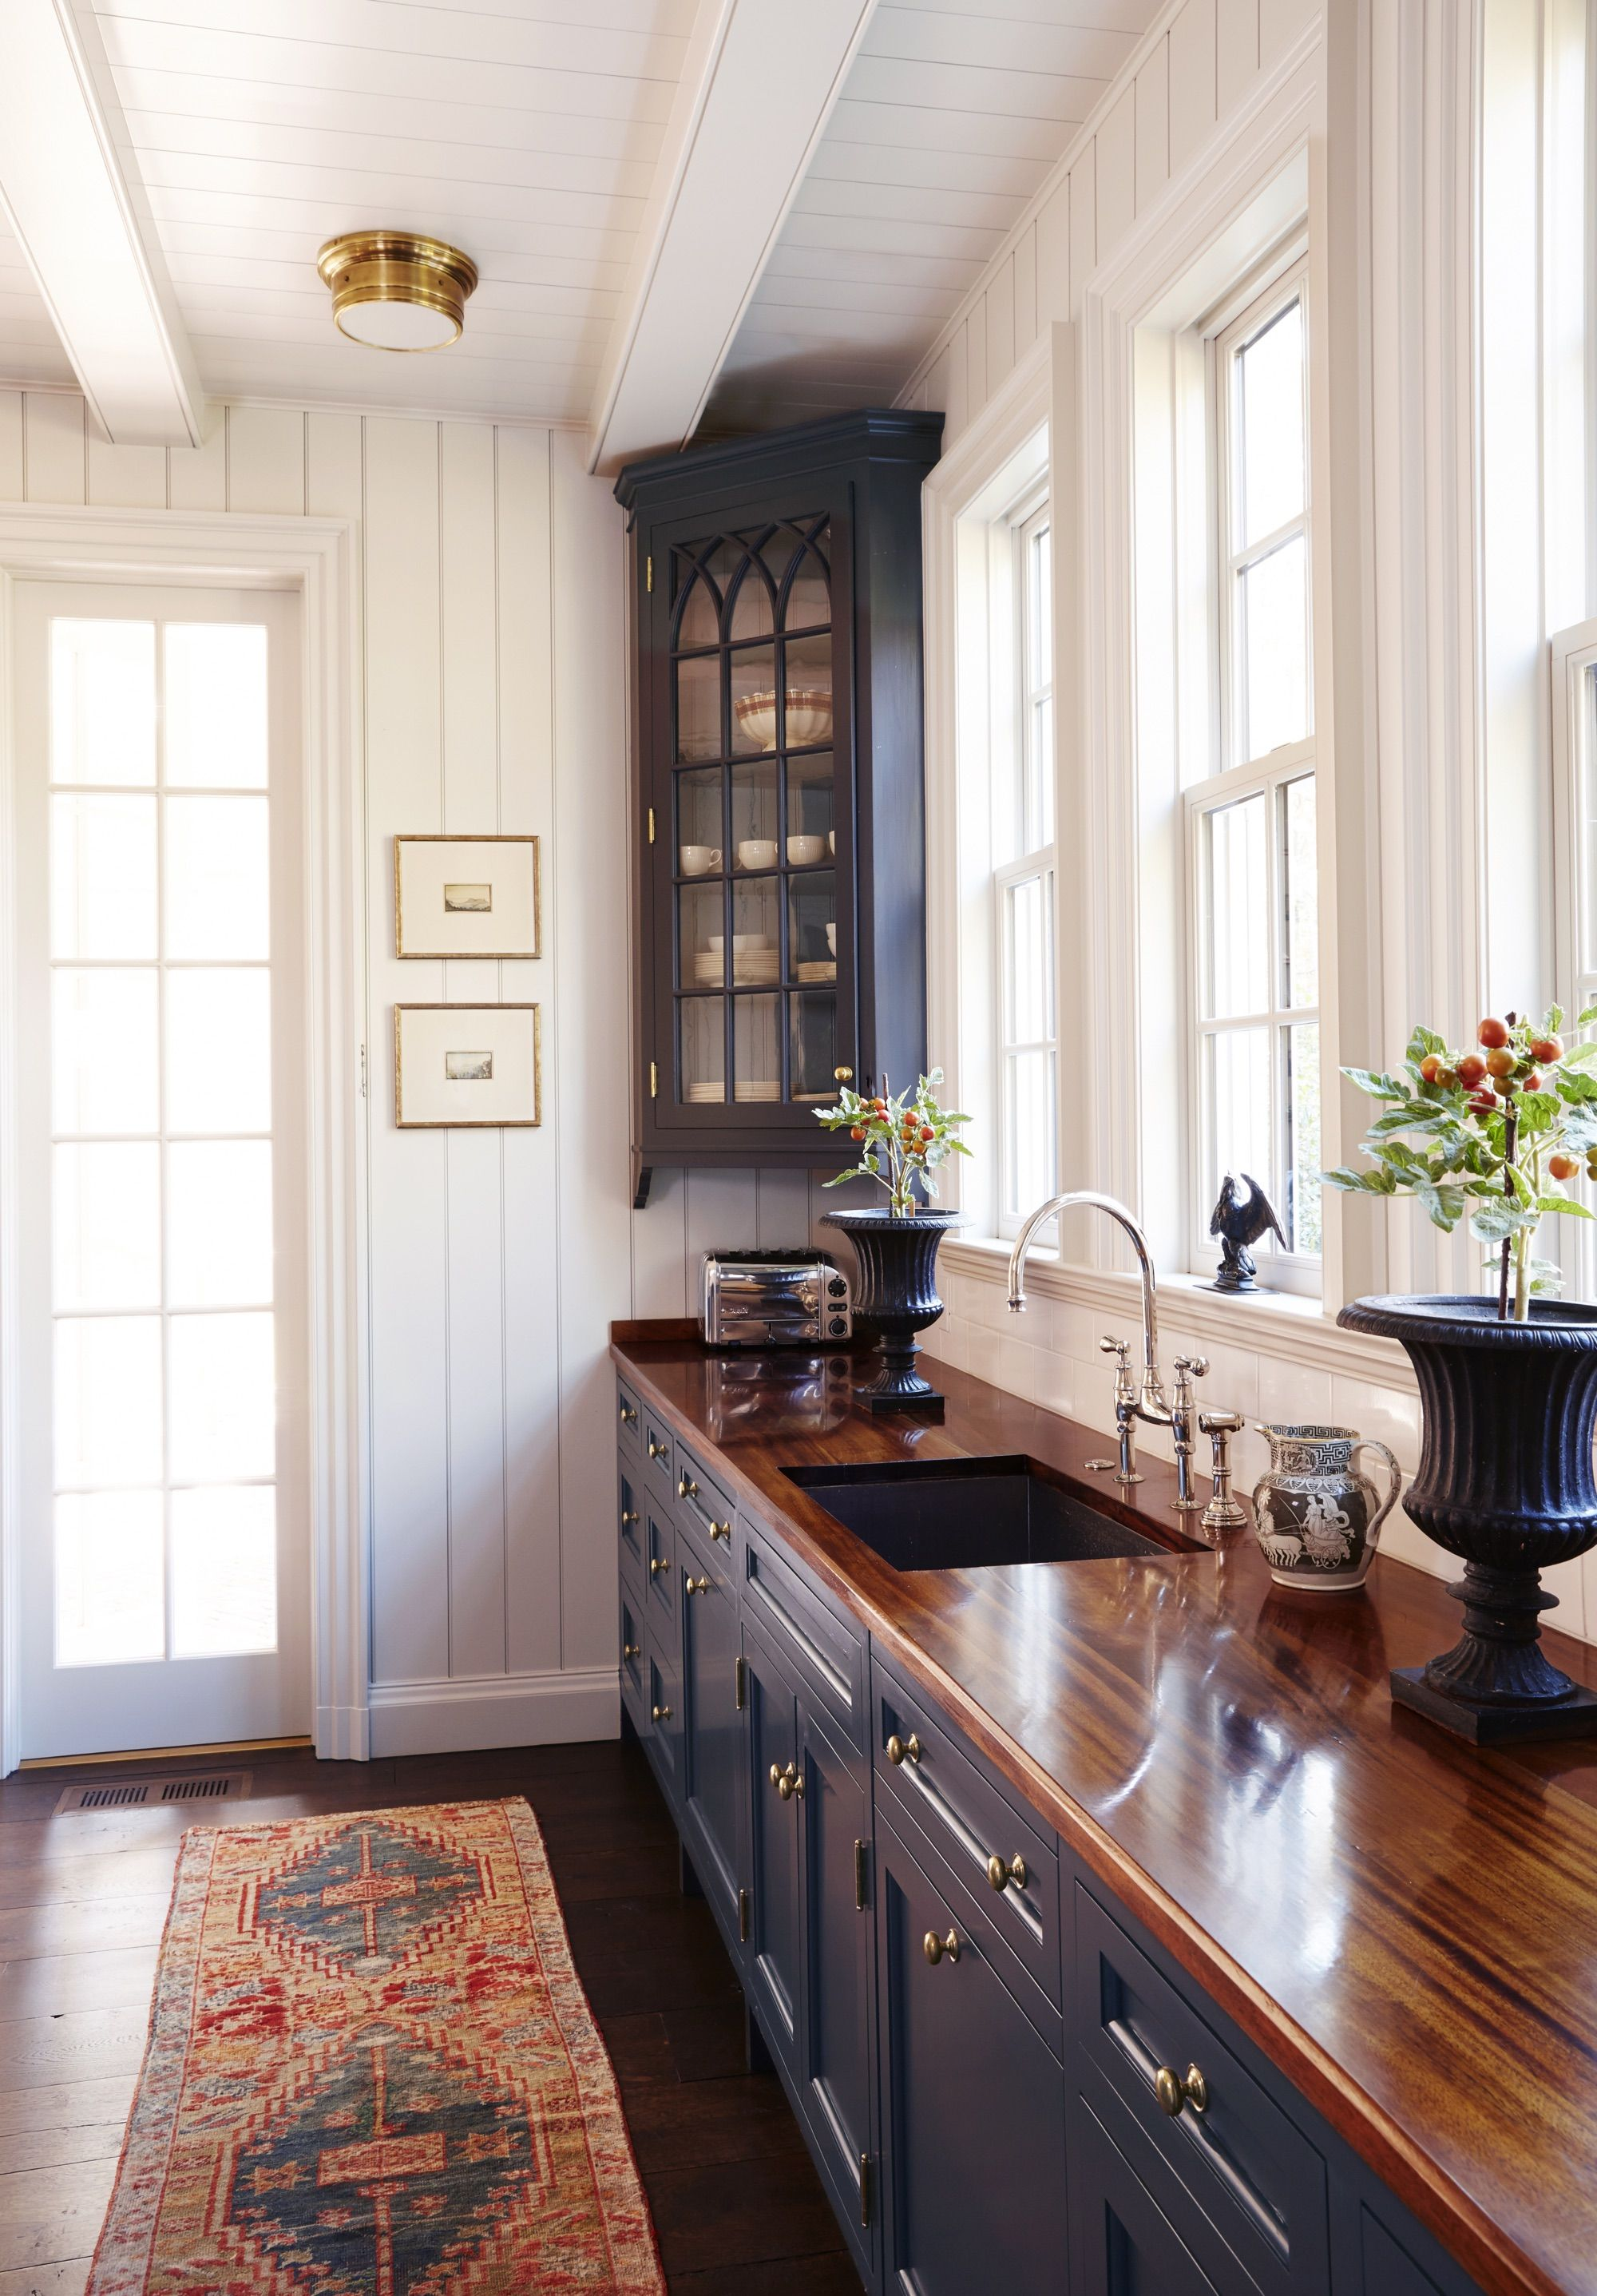 Best Kitchen Gallery: House In Birmingham Nesting Pinterest House Kitchens And of Kitchen Cabinets Birmingham Al on cal-ite.com